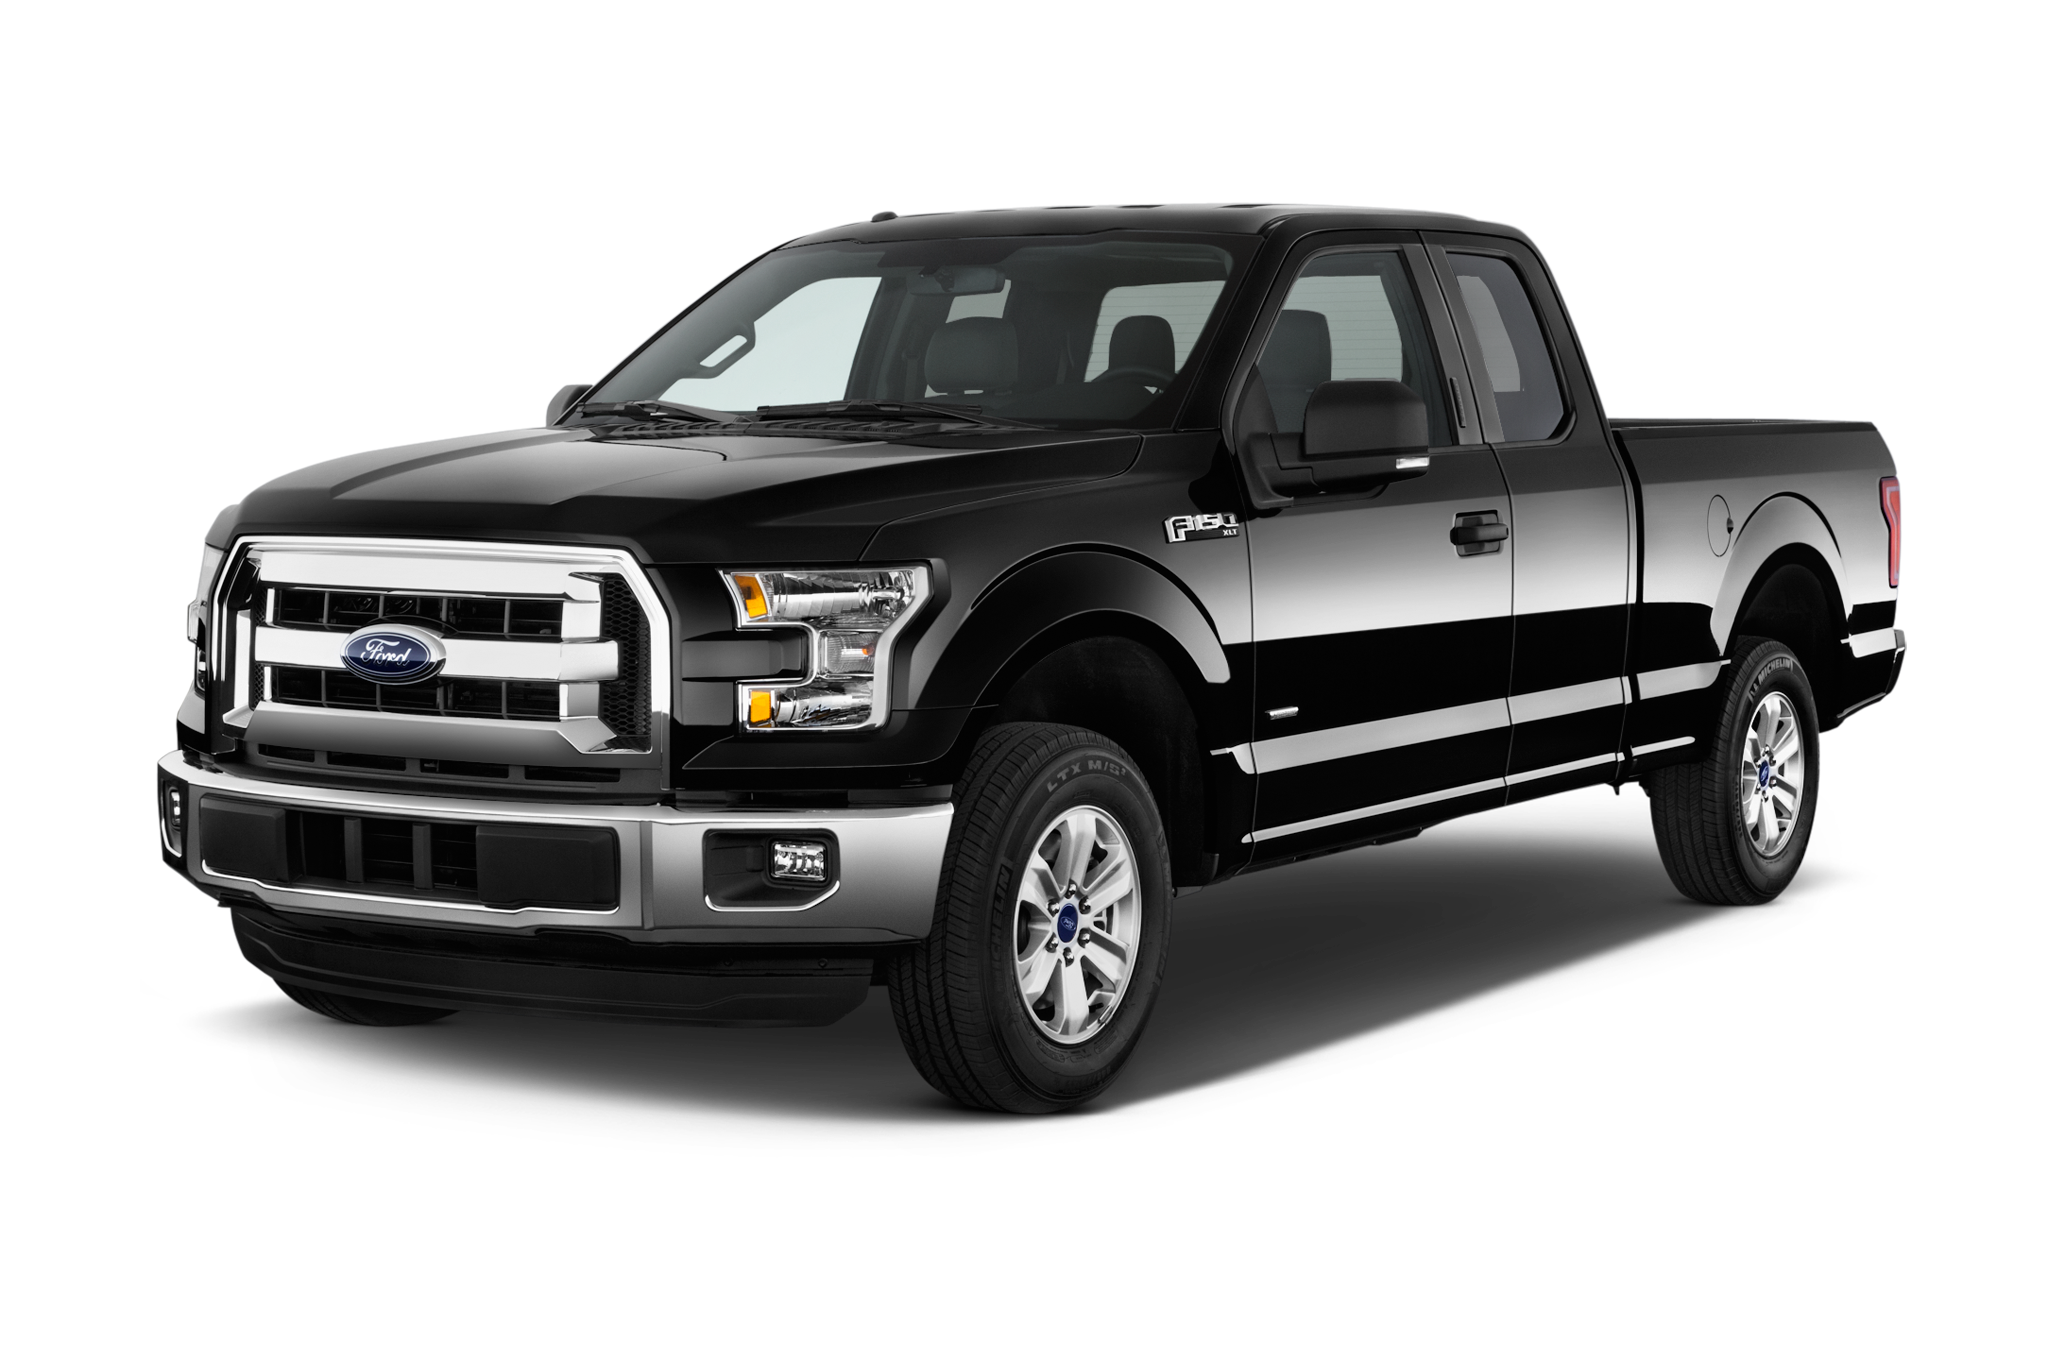 2015 ford f 150 xl supercab 163 in specs and features msn autos. Black Bedroom Furniture Sets. Home Design Ideas